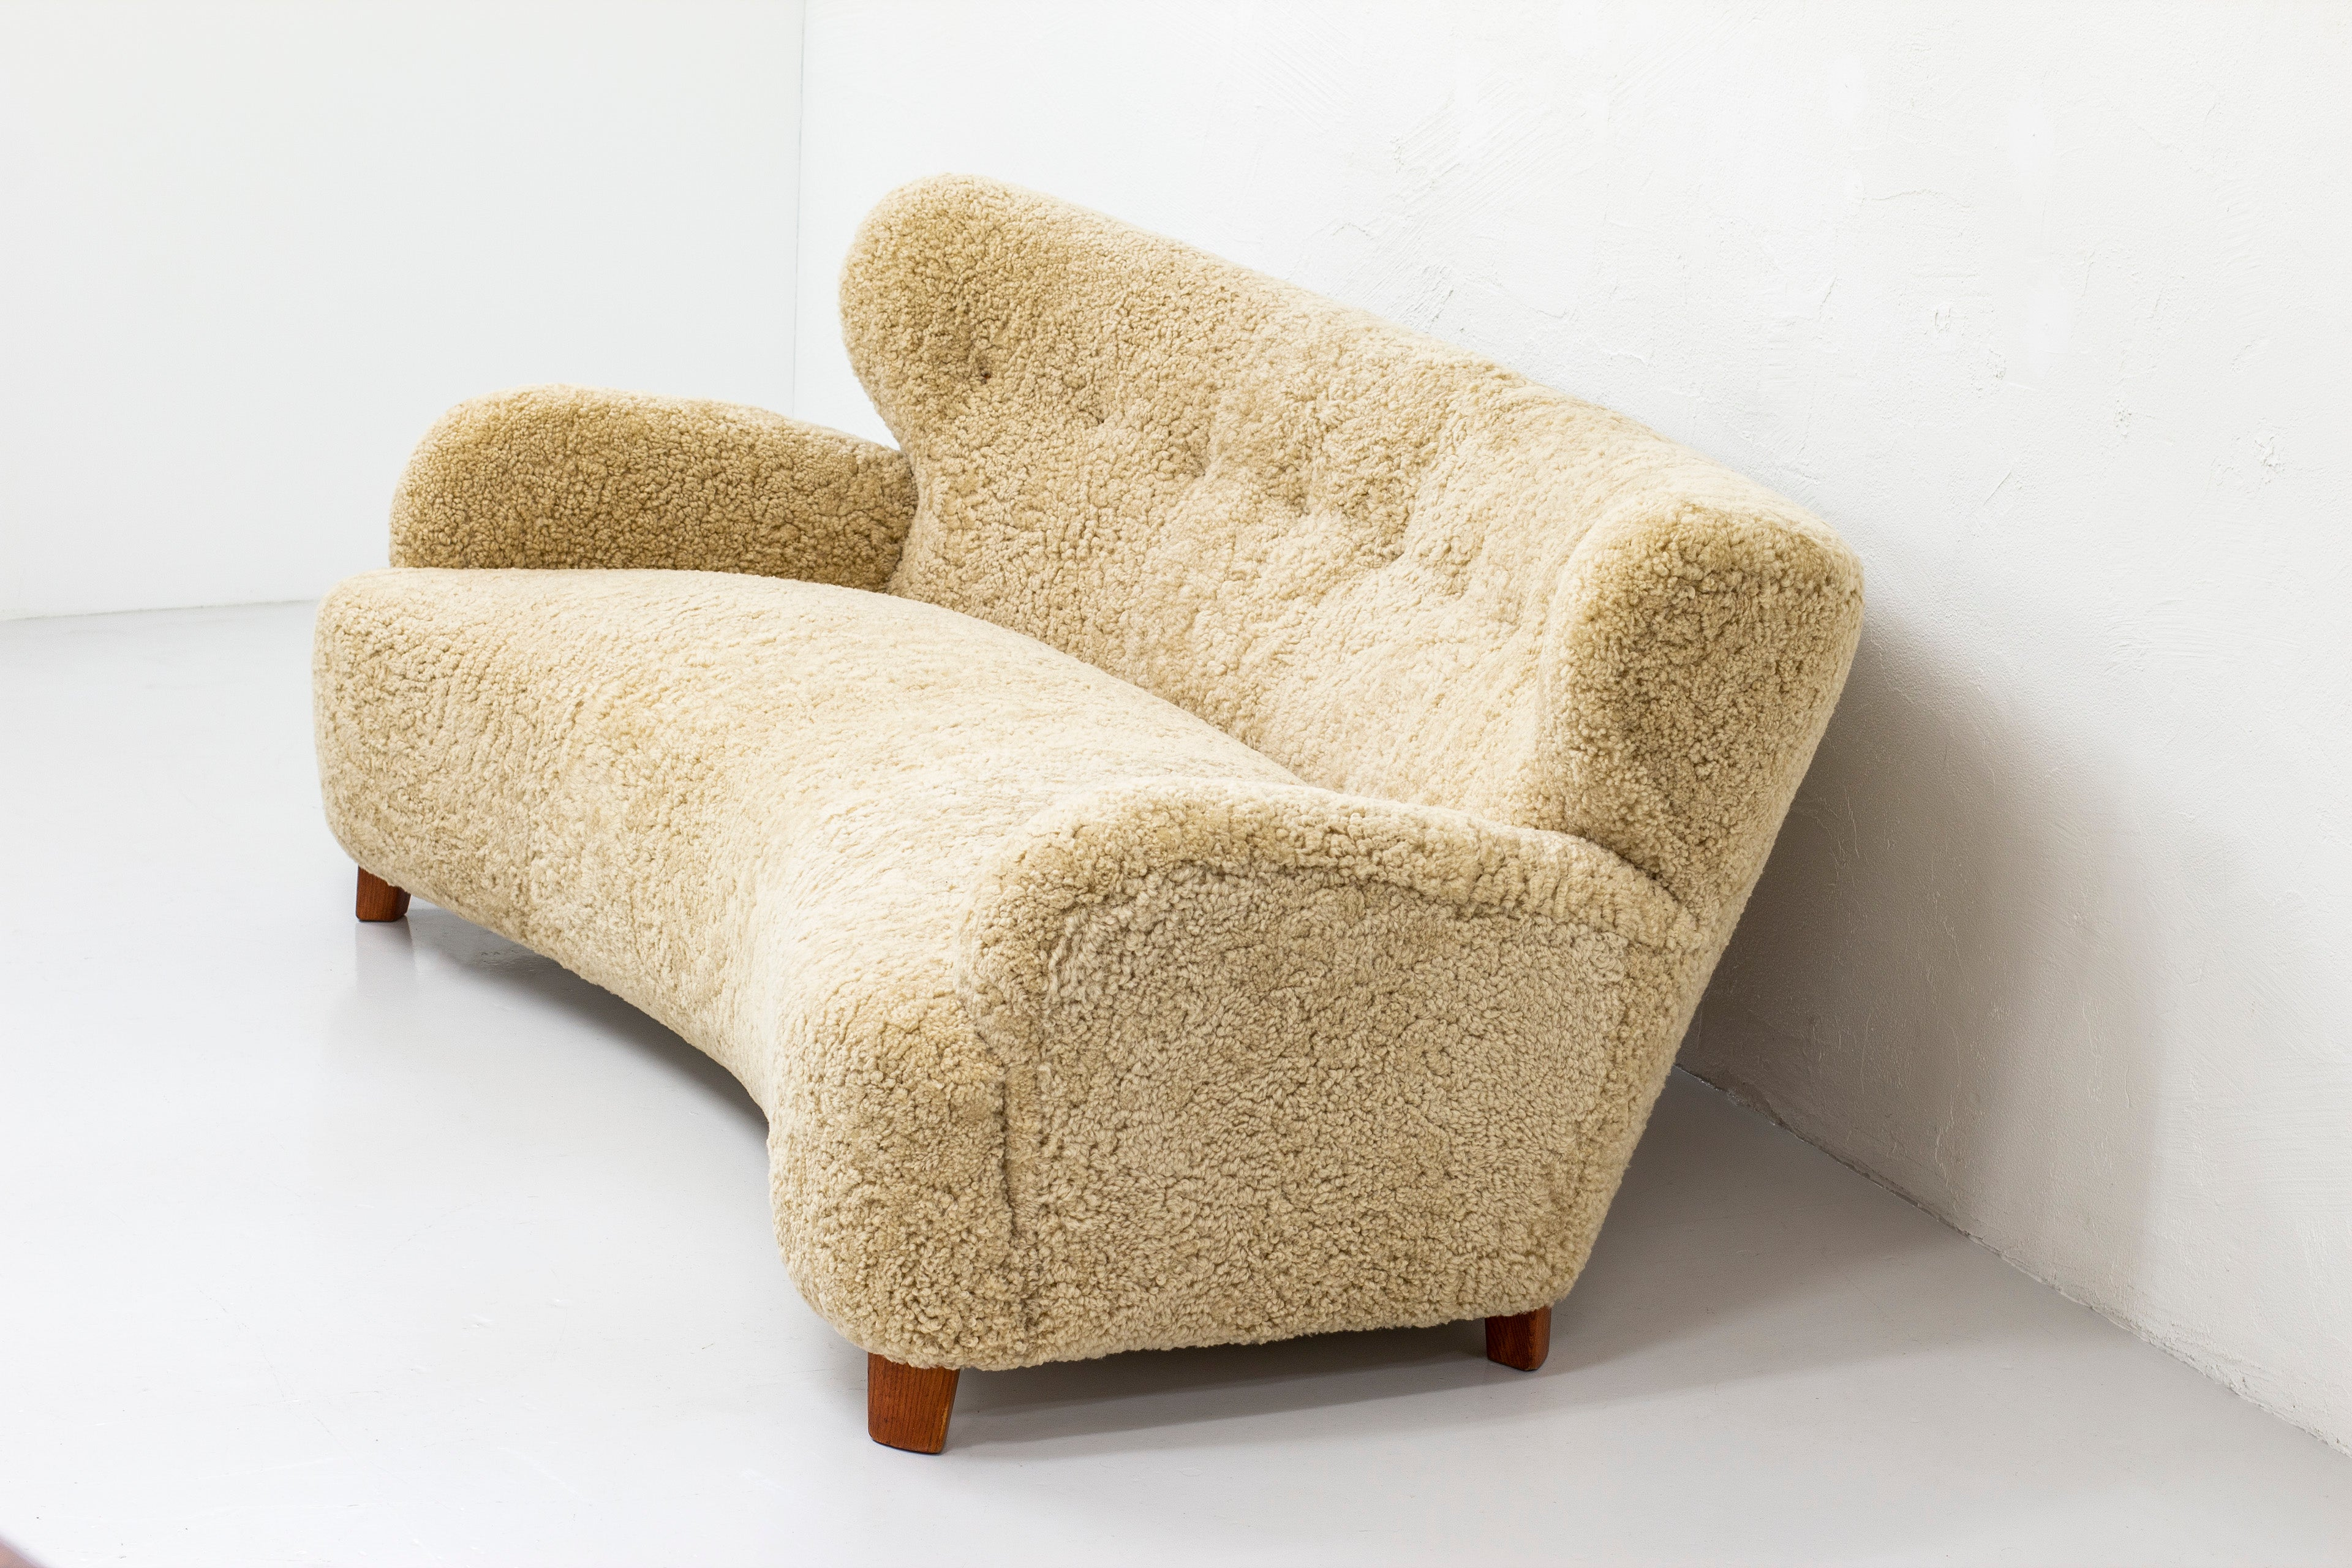 Sofa attributed to Flemming Lassen